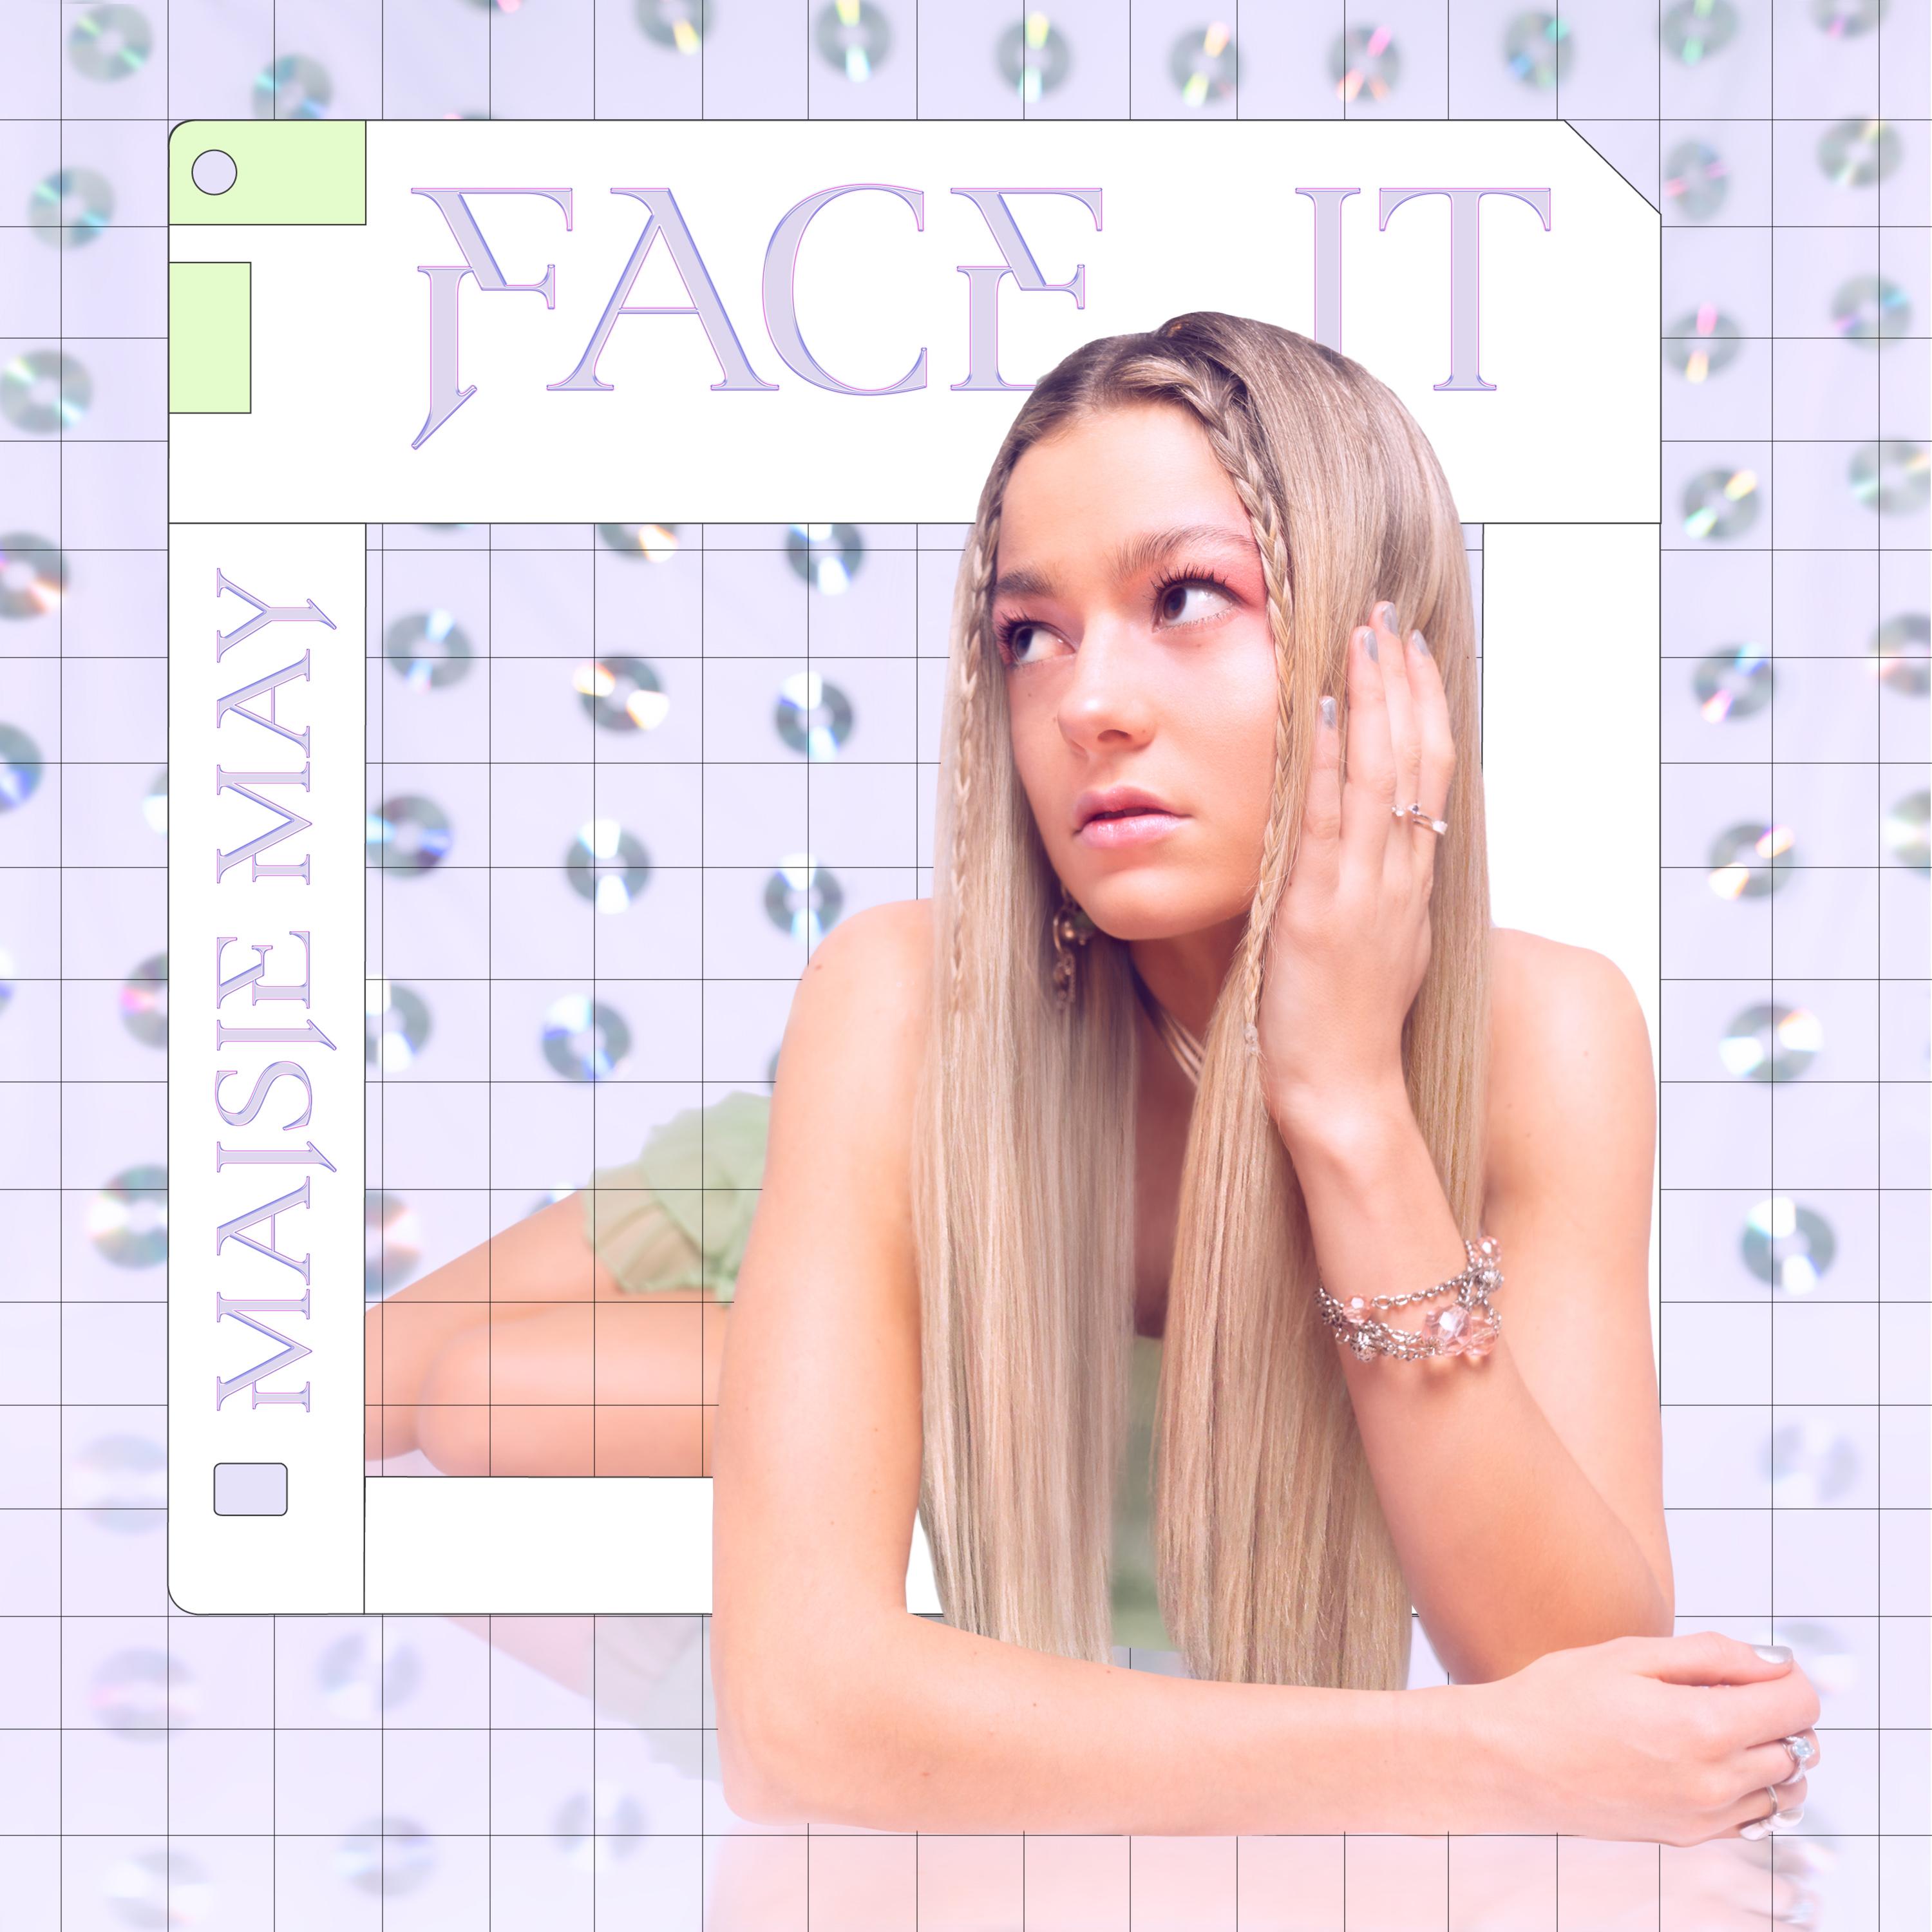 'Face It' out now on all streaming platforms!